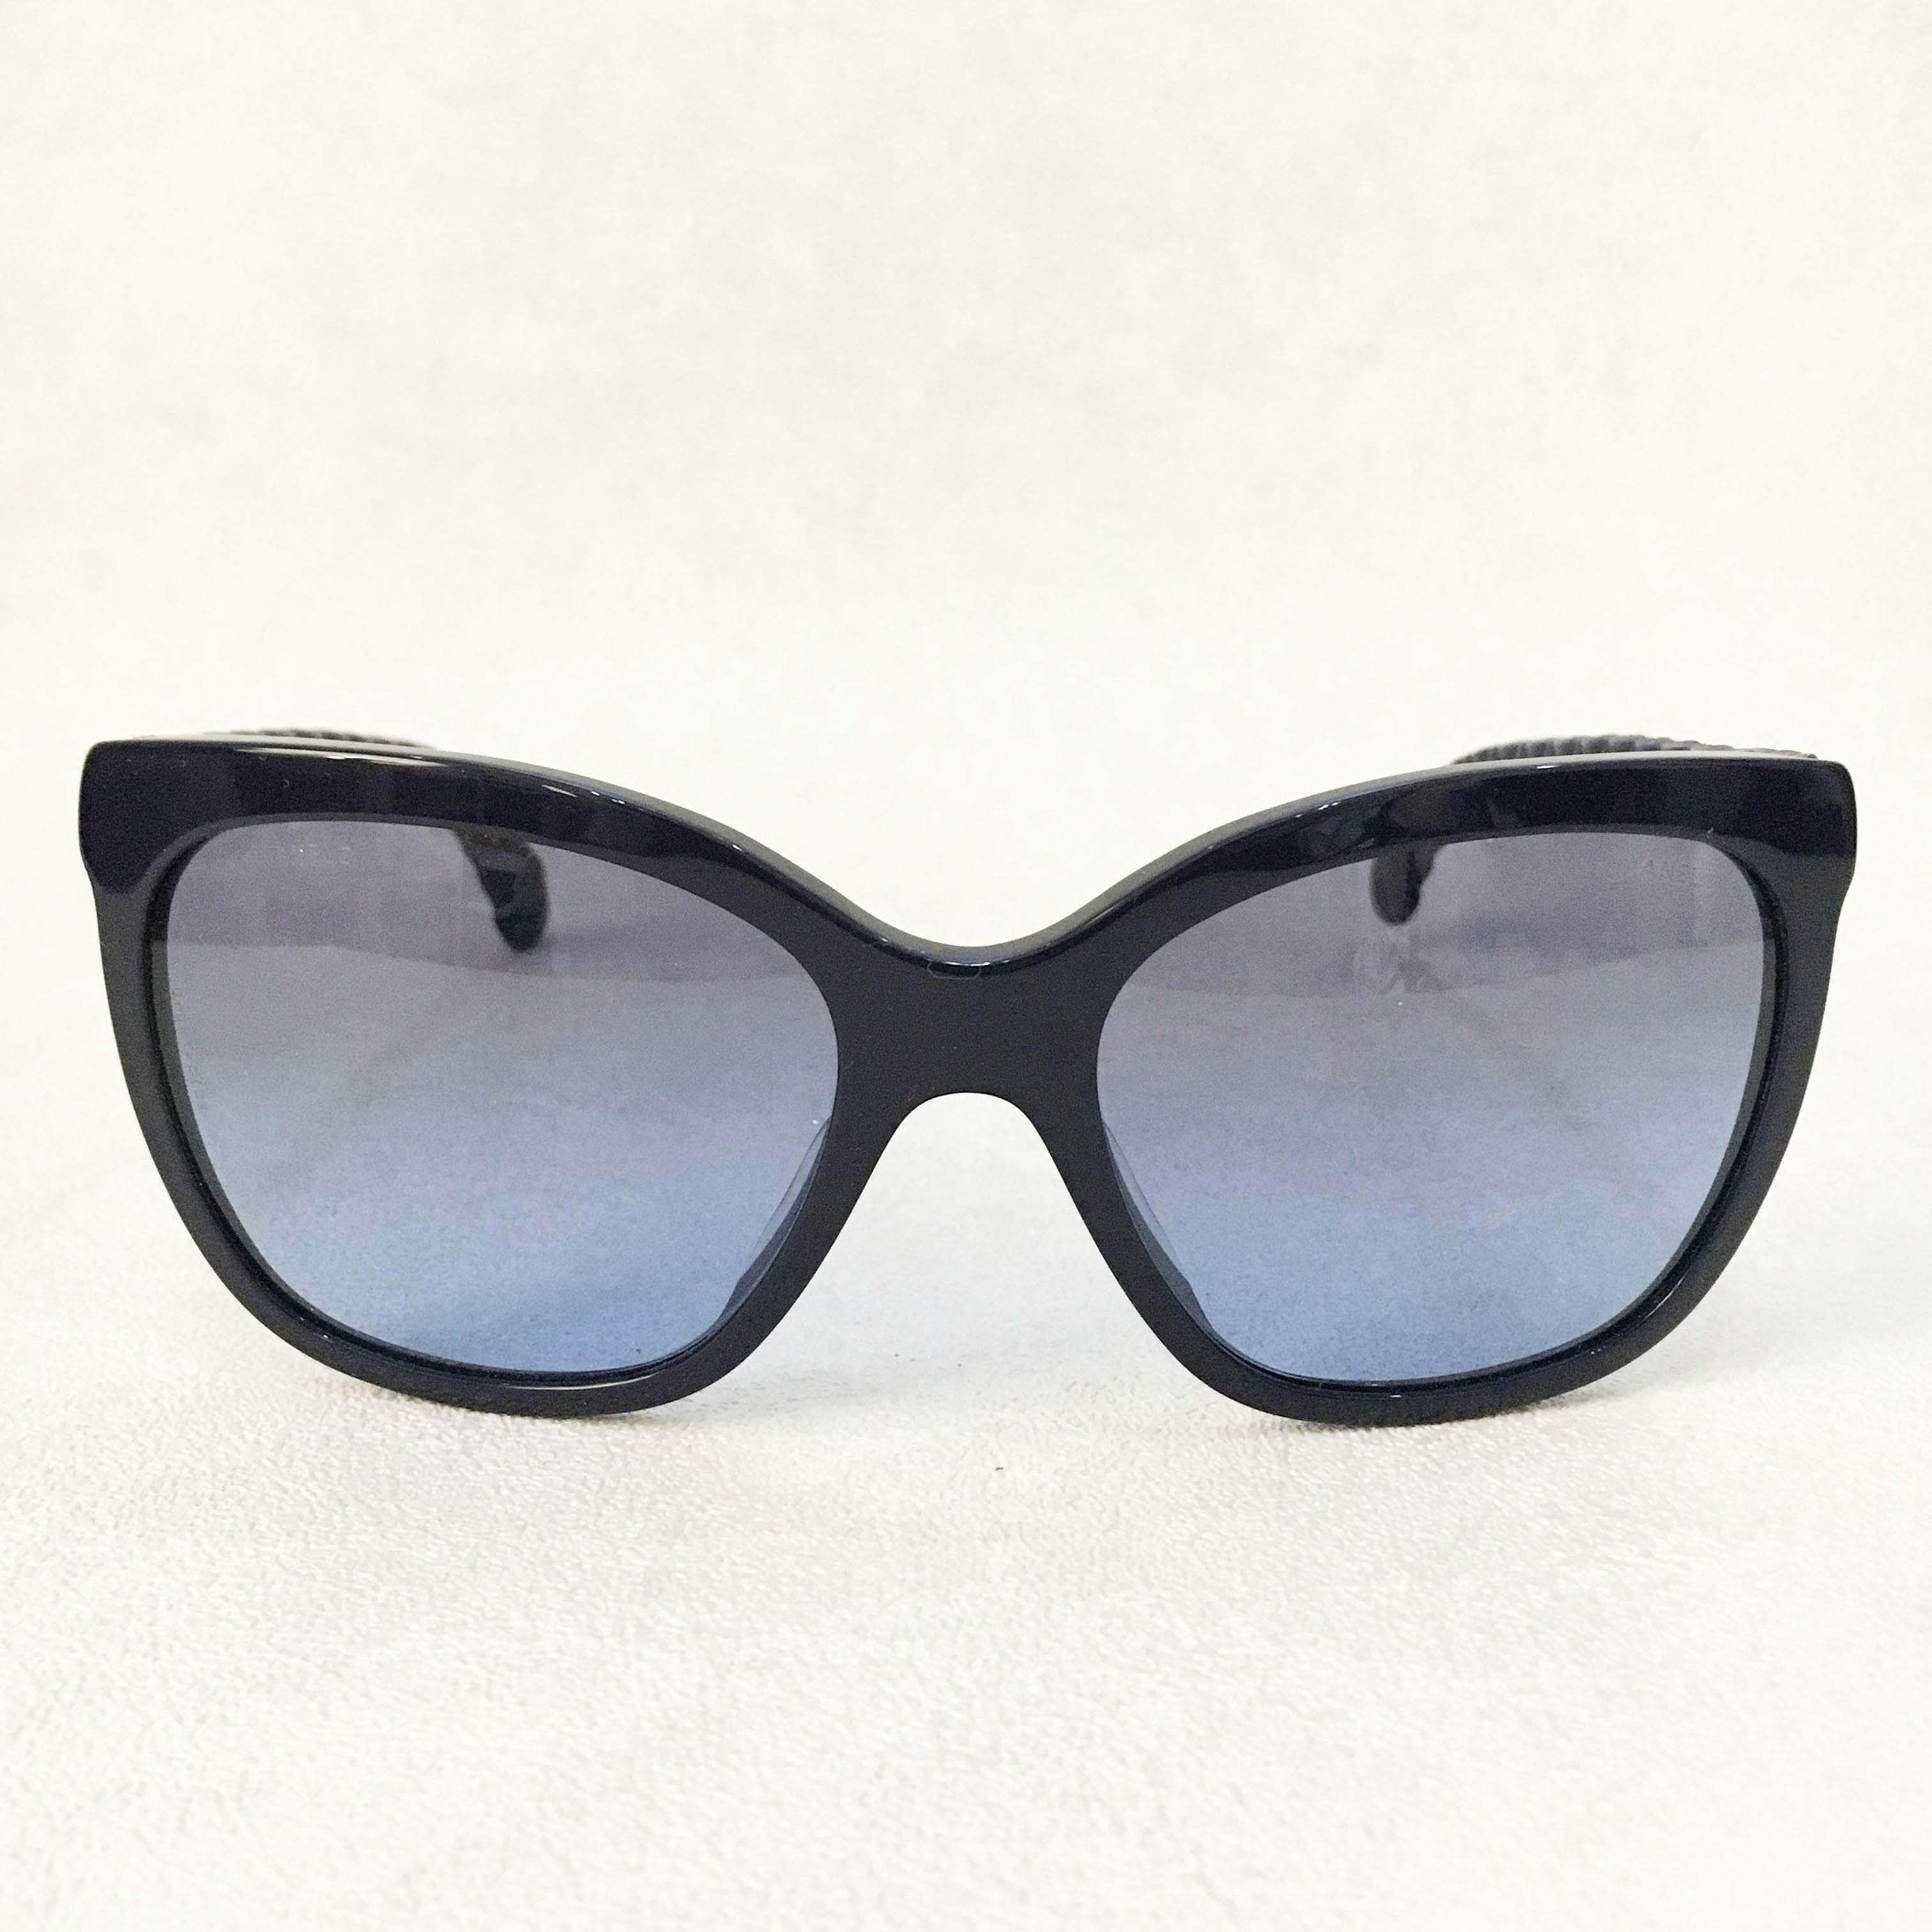 Chanel Dark Blue Sunglasses with Leather arms